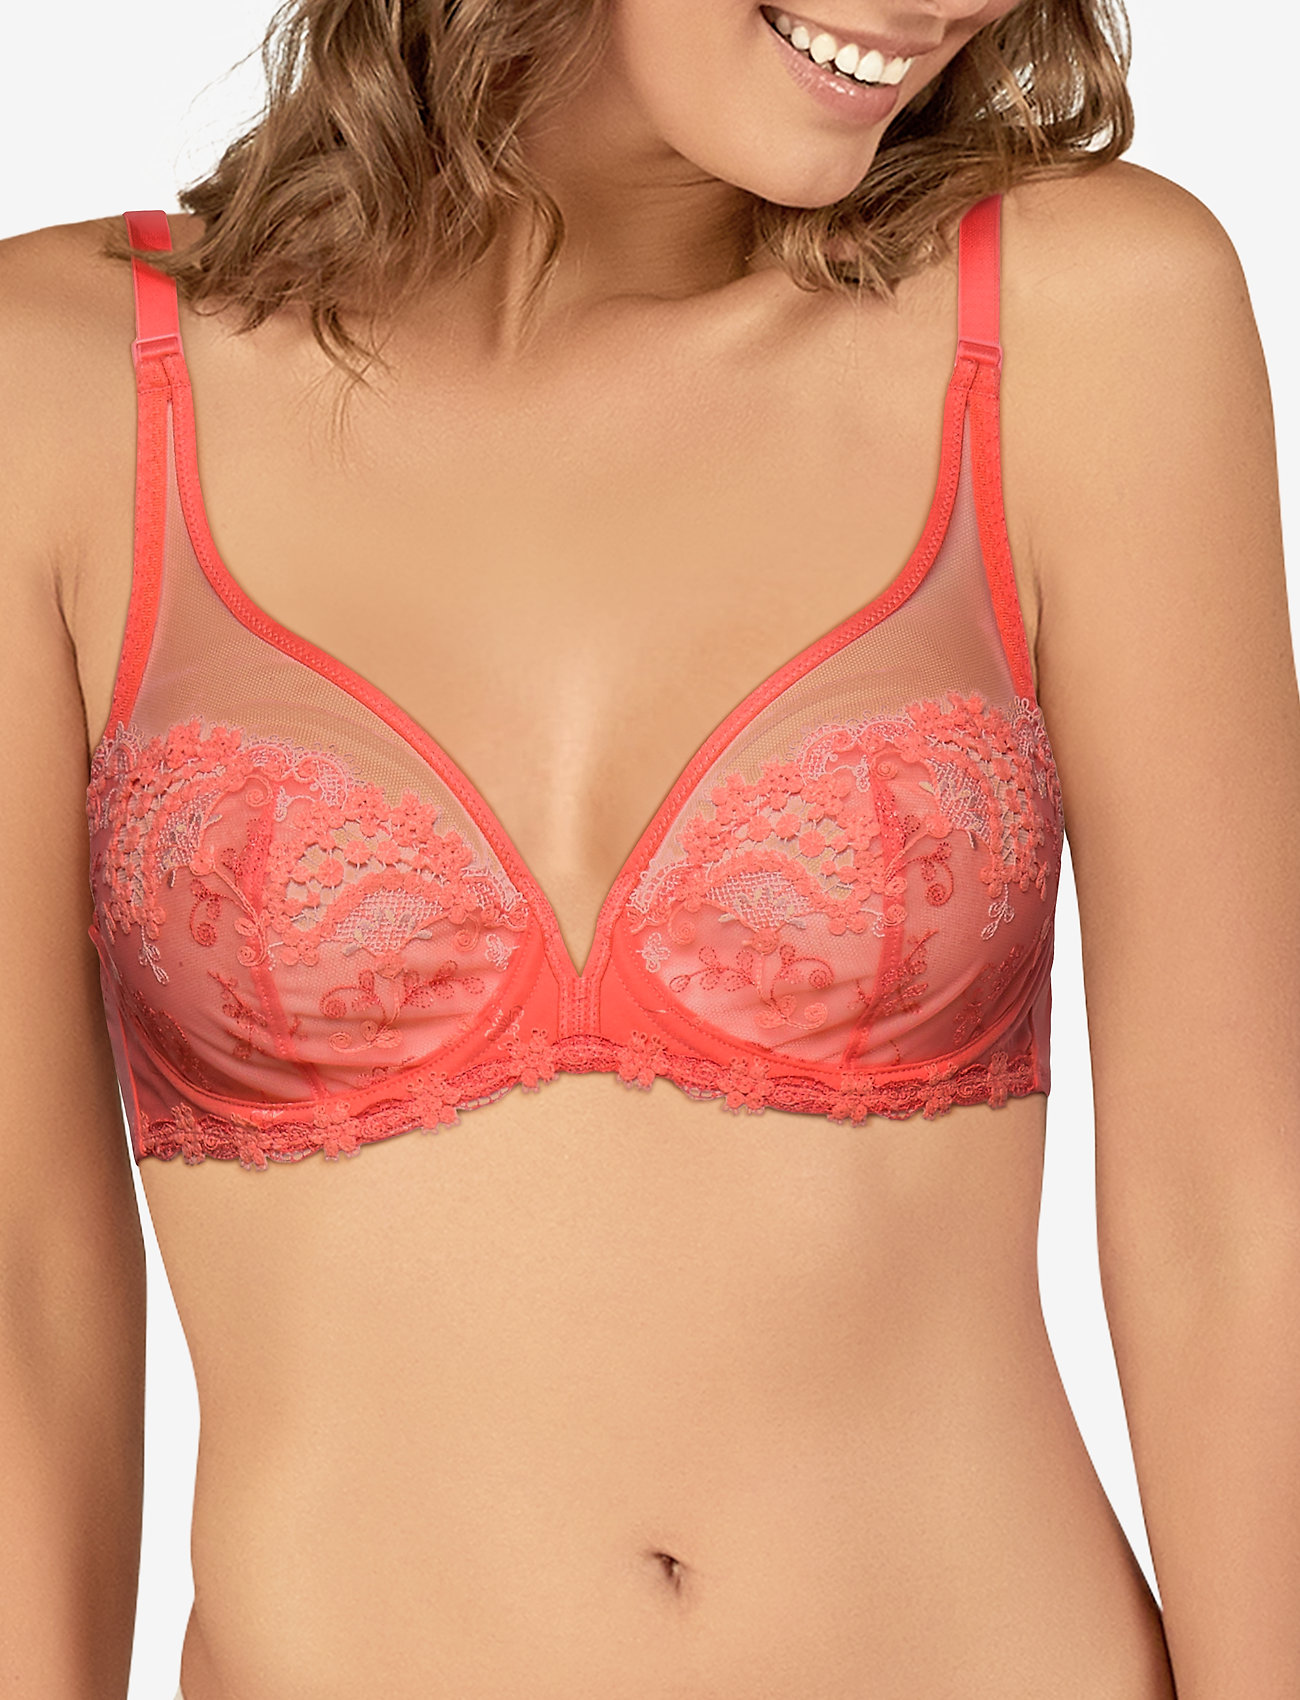 Simone Pérèle - Wish 12B319 - bras with padding - coral - 0